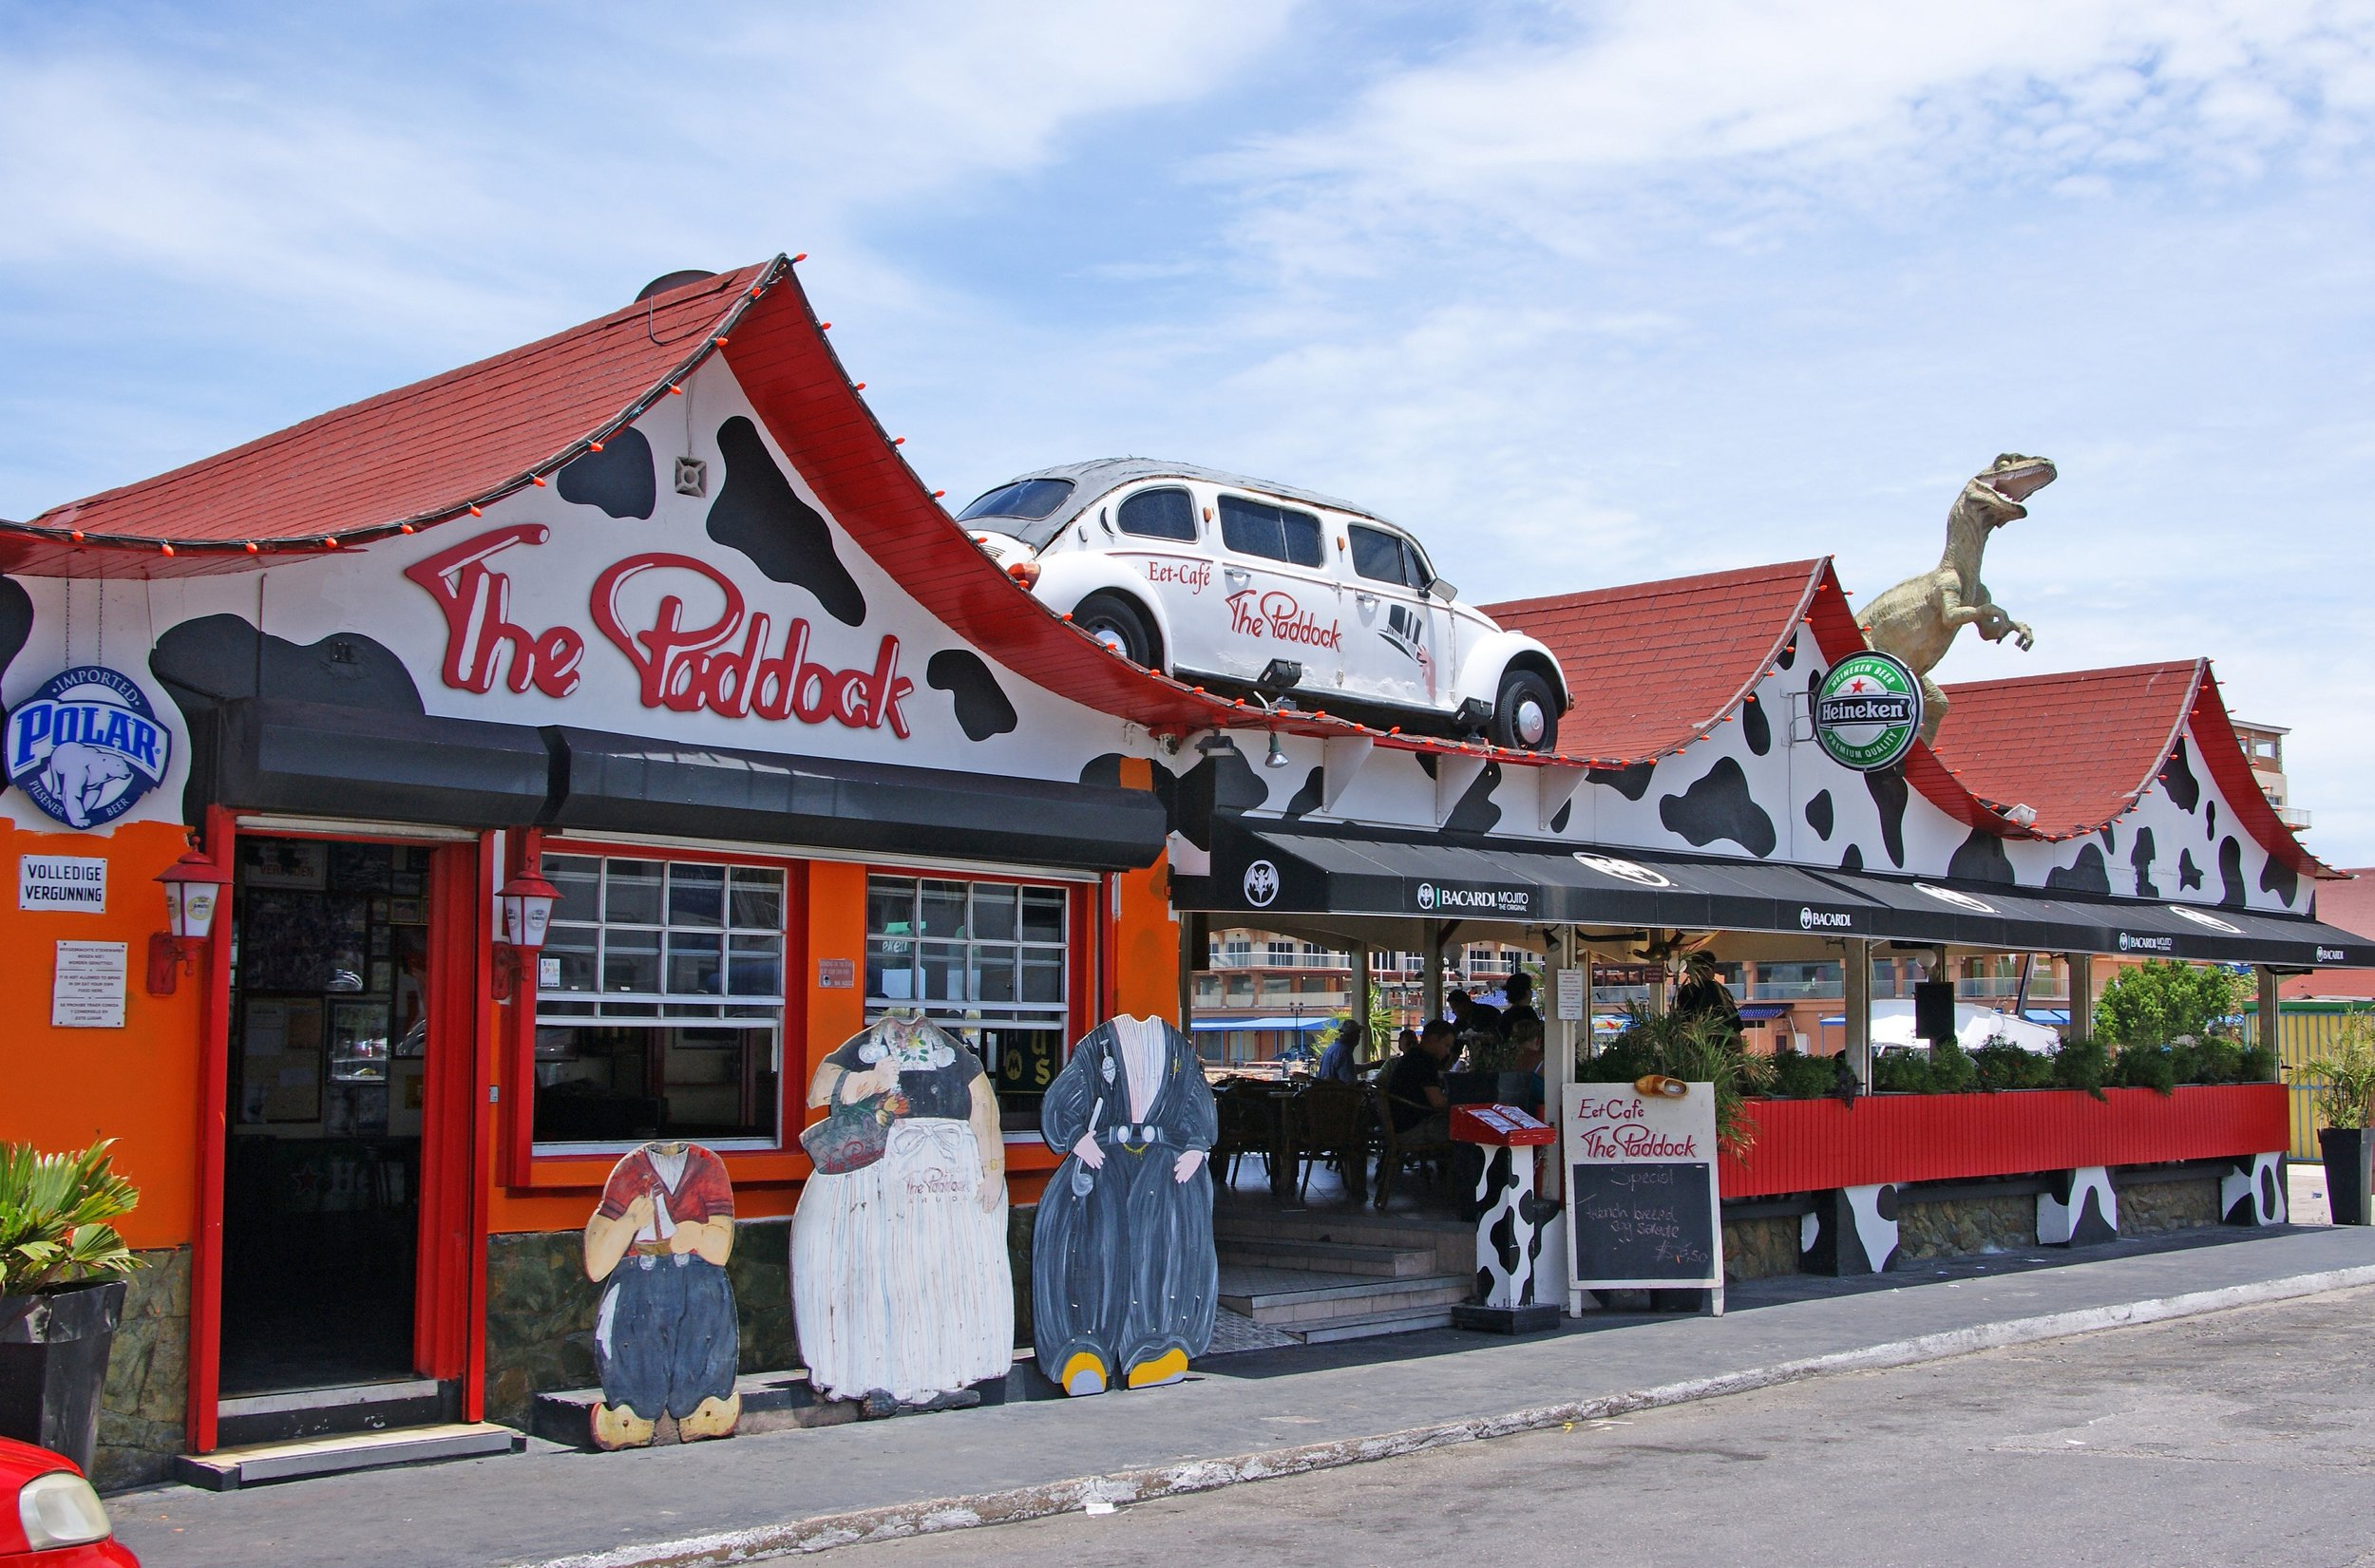 The paddock - This cozy restaurant is situated in the city center but still with a ocean view. The menu is inspired by the Dutch cuisine.Adres:Lloyd G. Smith Blvd 13, Oranjestad, ArubaOpening hours: open daily from 9:00 till 22:45Phone number:+297 583 2334